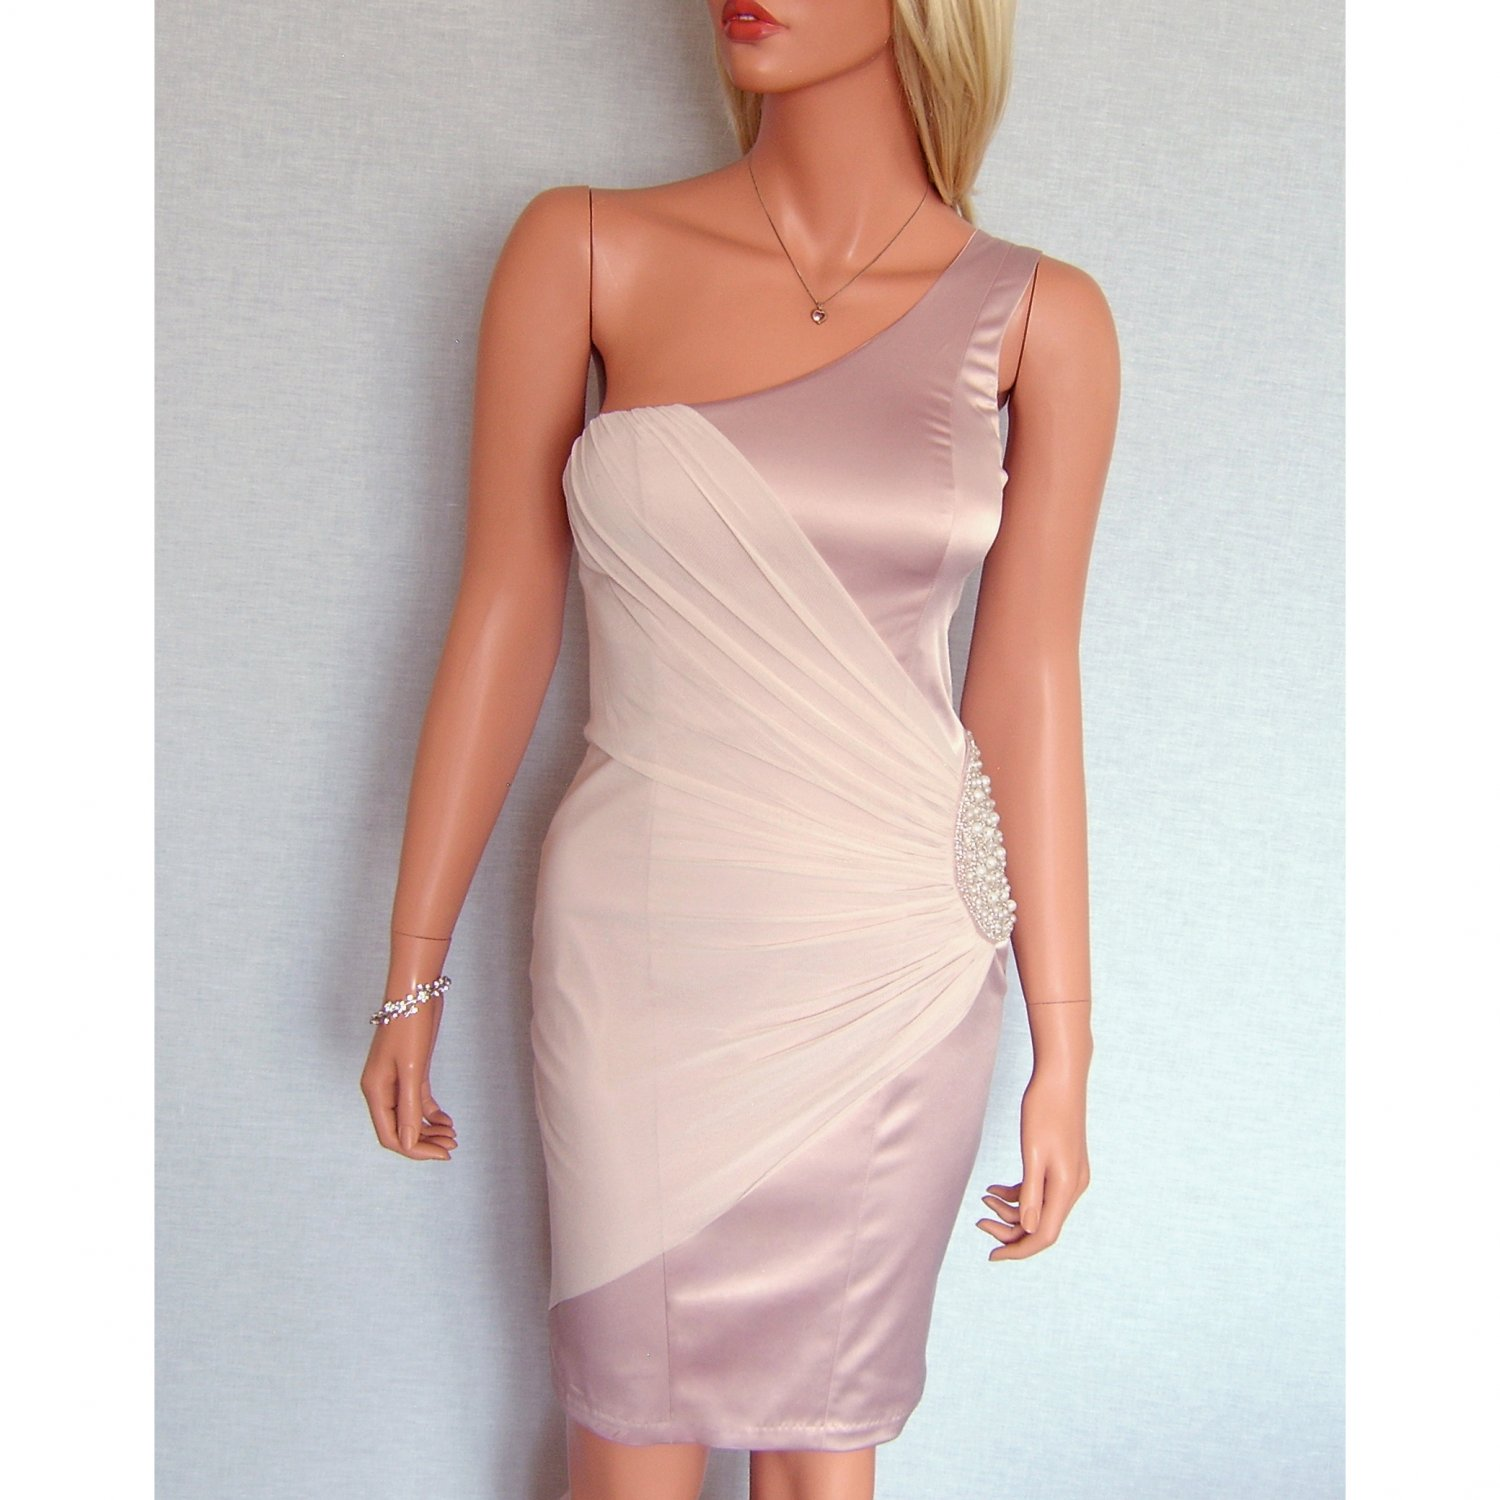 ELISE RYAN TOPSHOP PINK PEARL BEADED EVENING BODYCON MINI COCKTAIL CLUB PARTY PROM DRESS UK 10, US 6